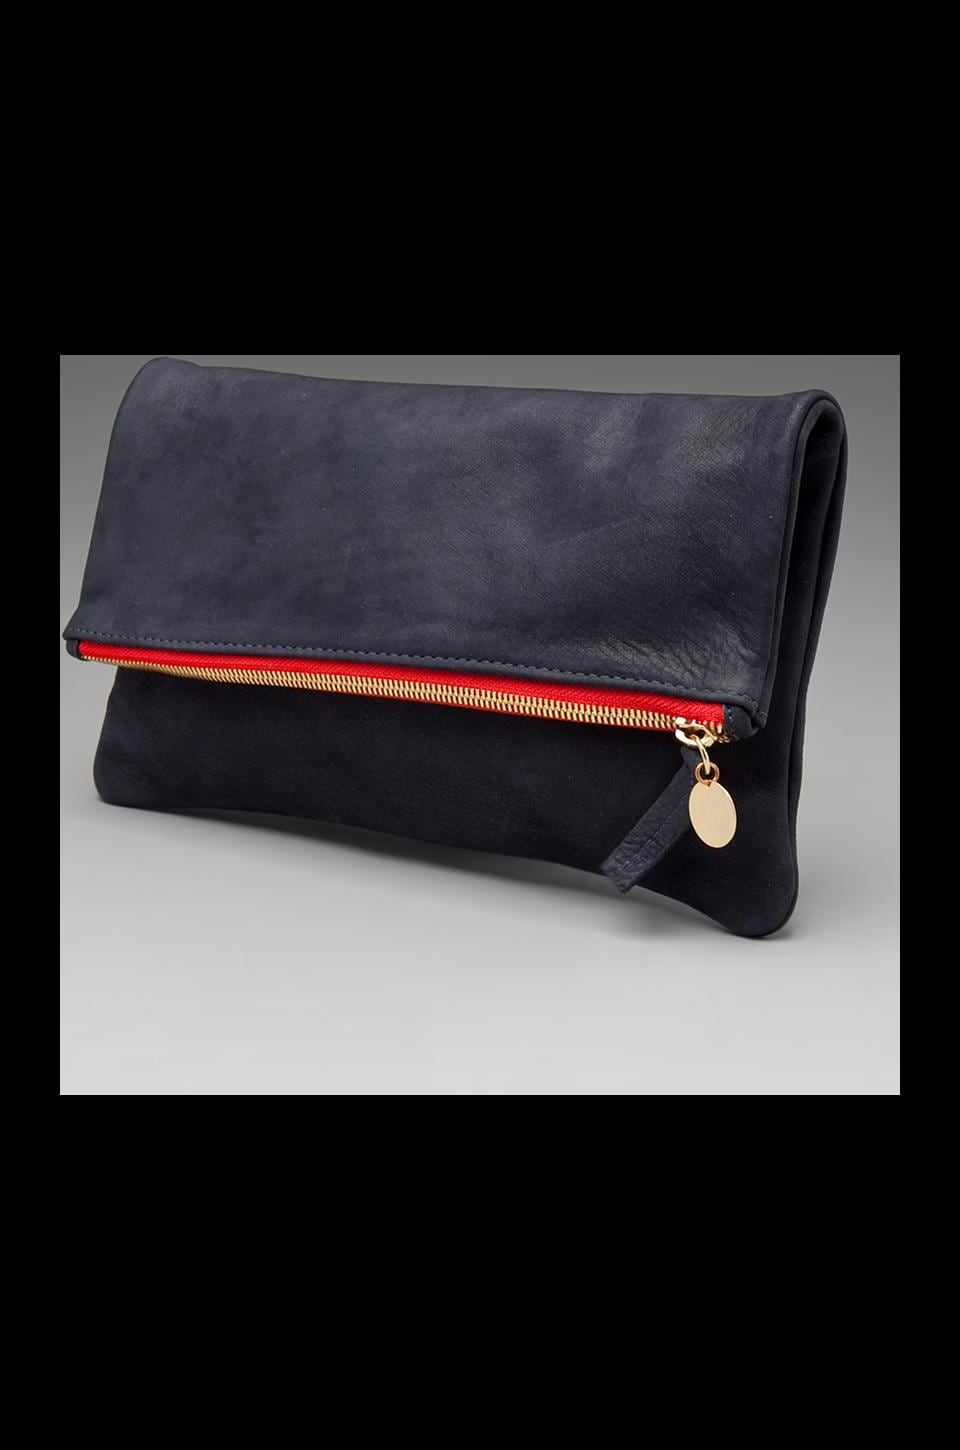 Clare V. Foldover Clutch in Navy/Red